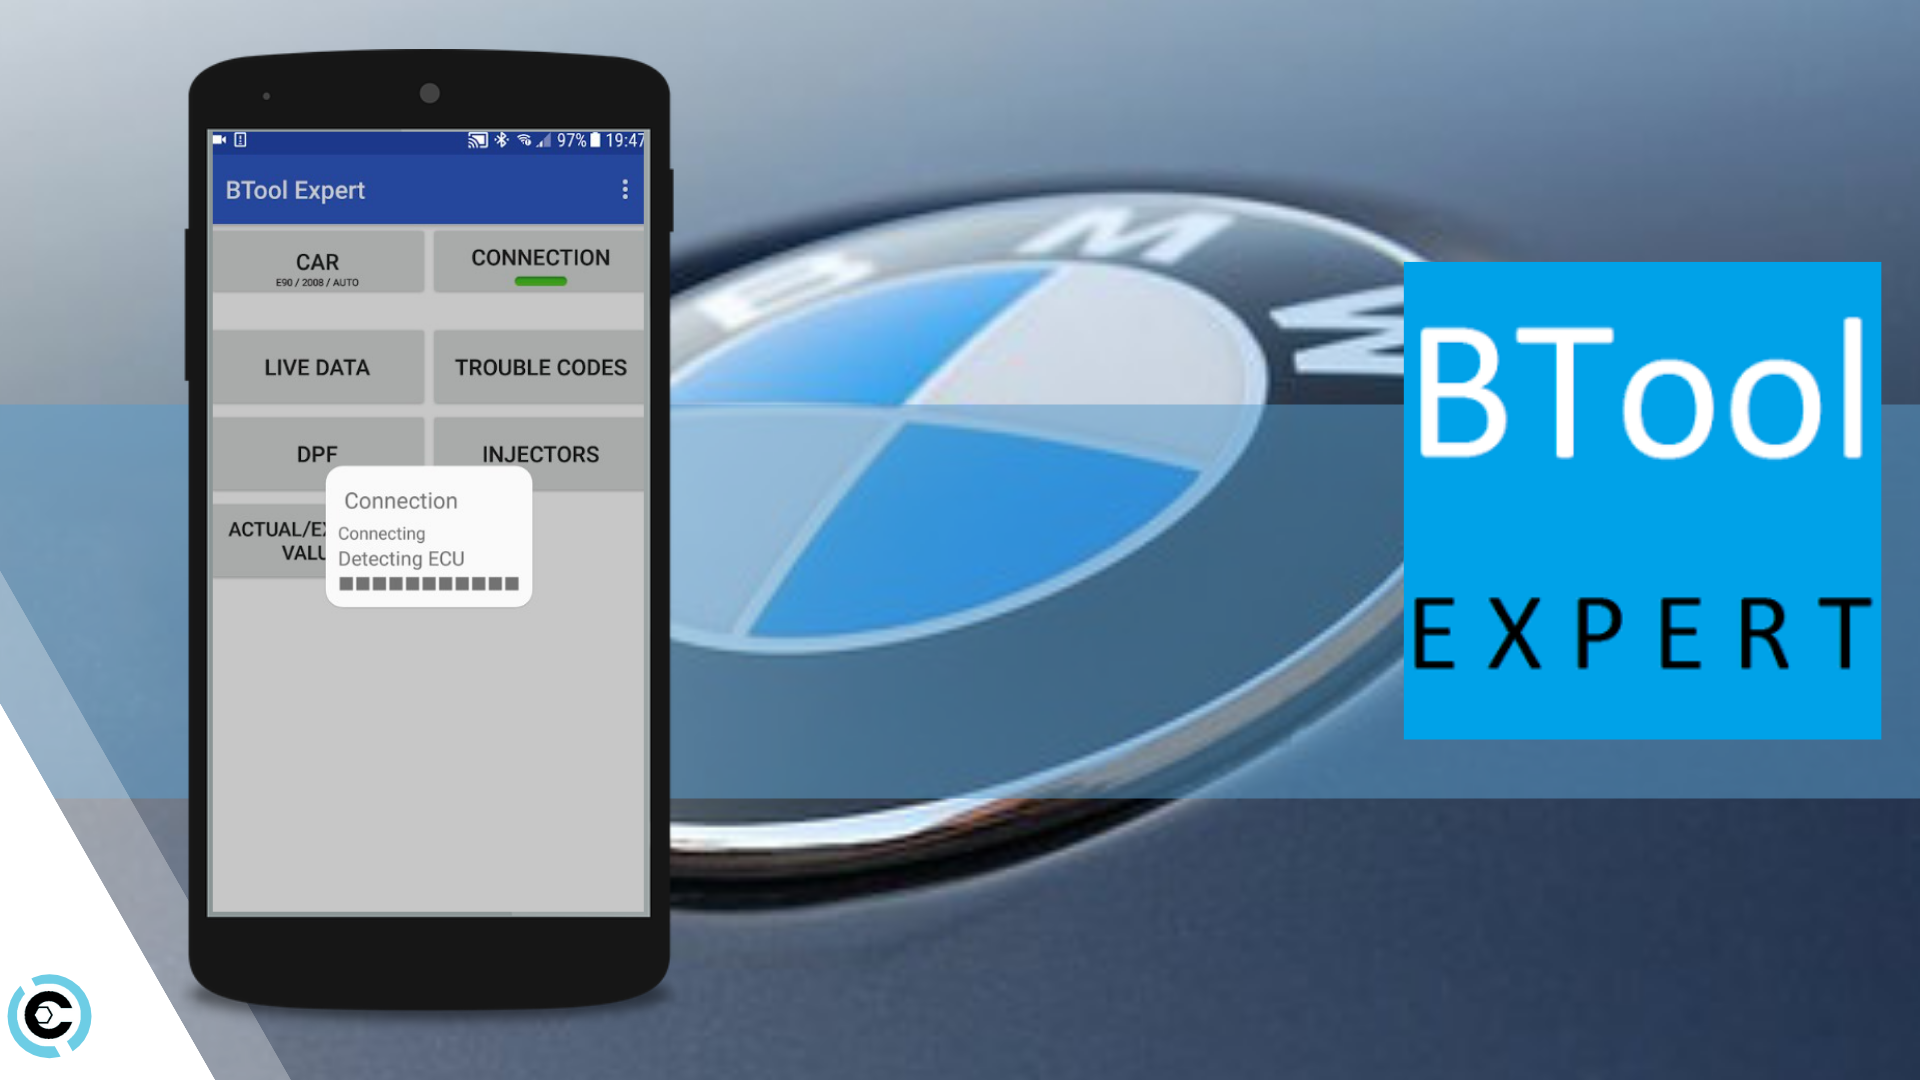 B Tool Expert recommends the Carista OBD2 adapter for Bluetooth